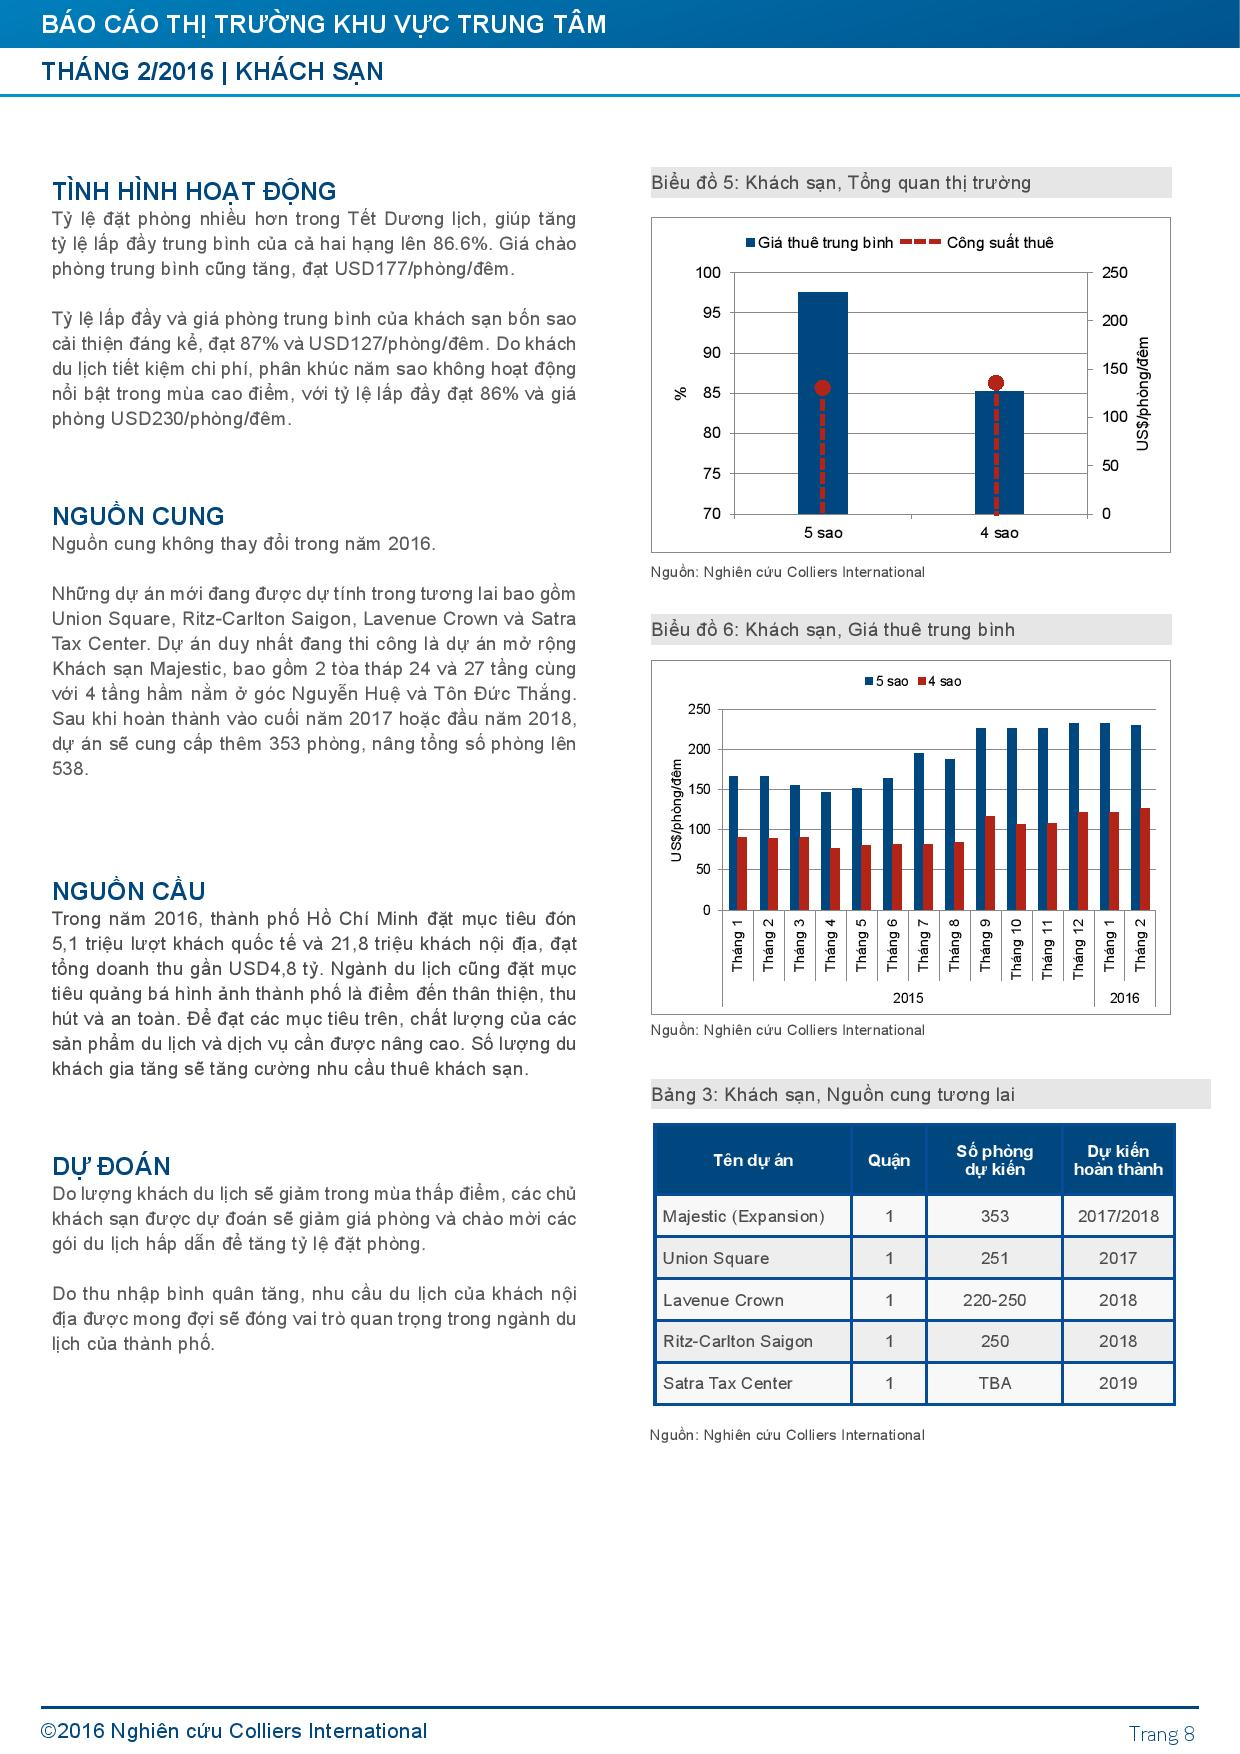 Colliers_HCMC_CBD report_Feb 2016_VIE-page-008